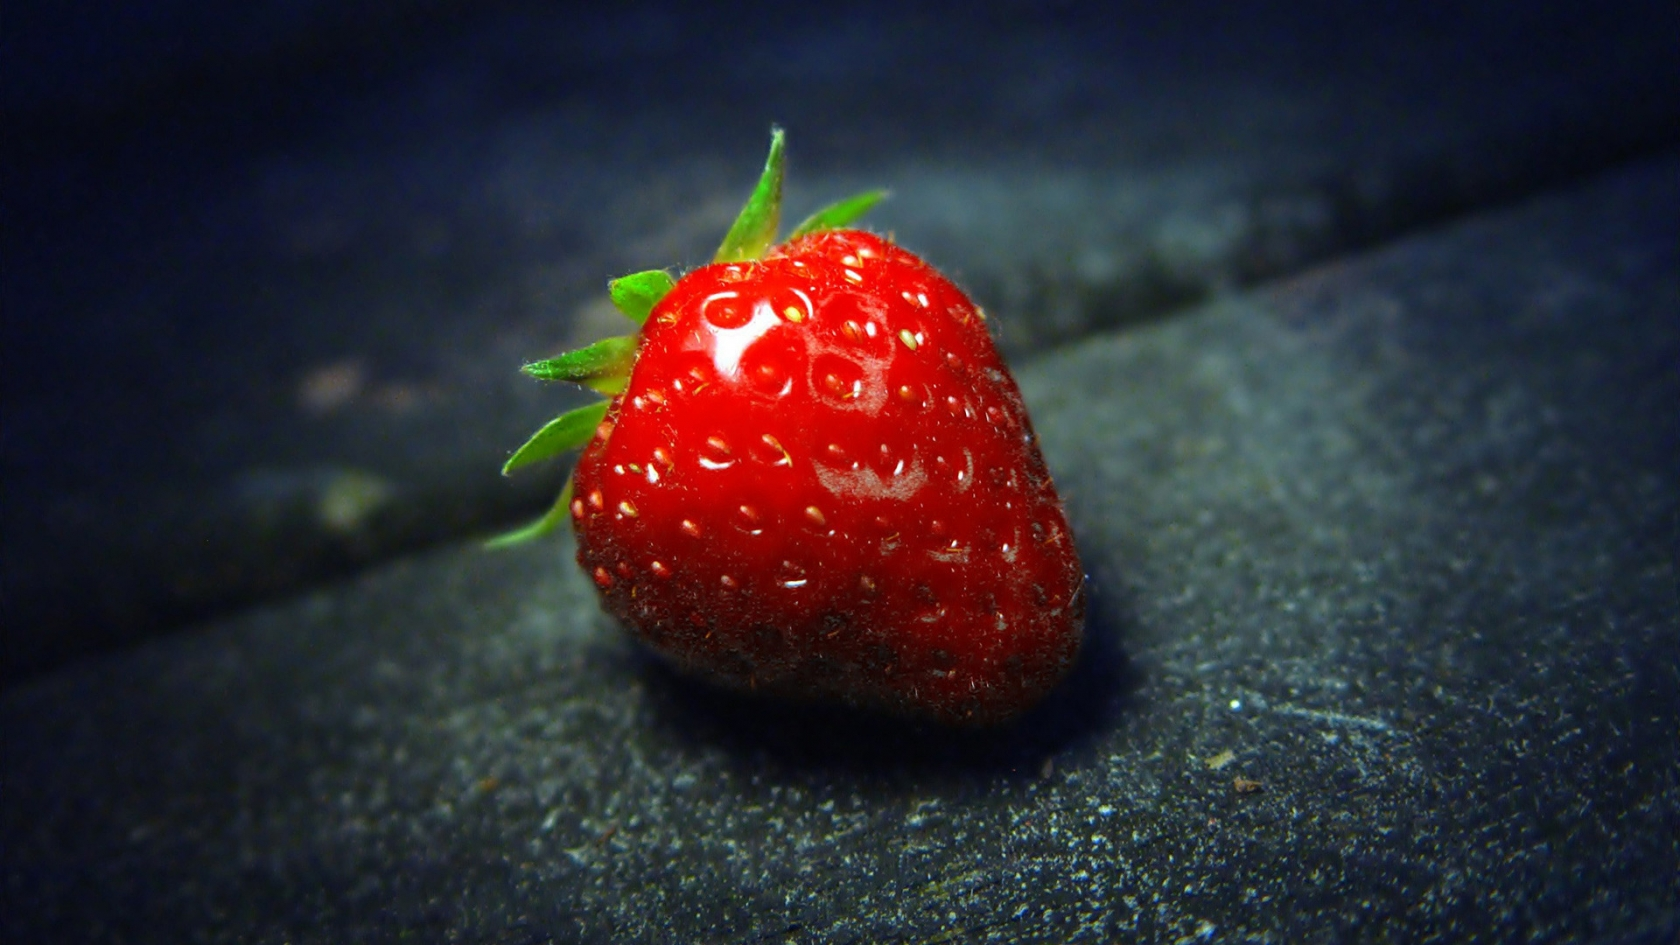 The Strawberry for 1680 x 945 HDTV resolution